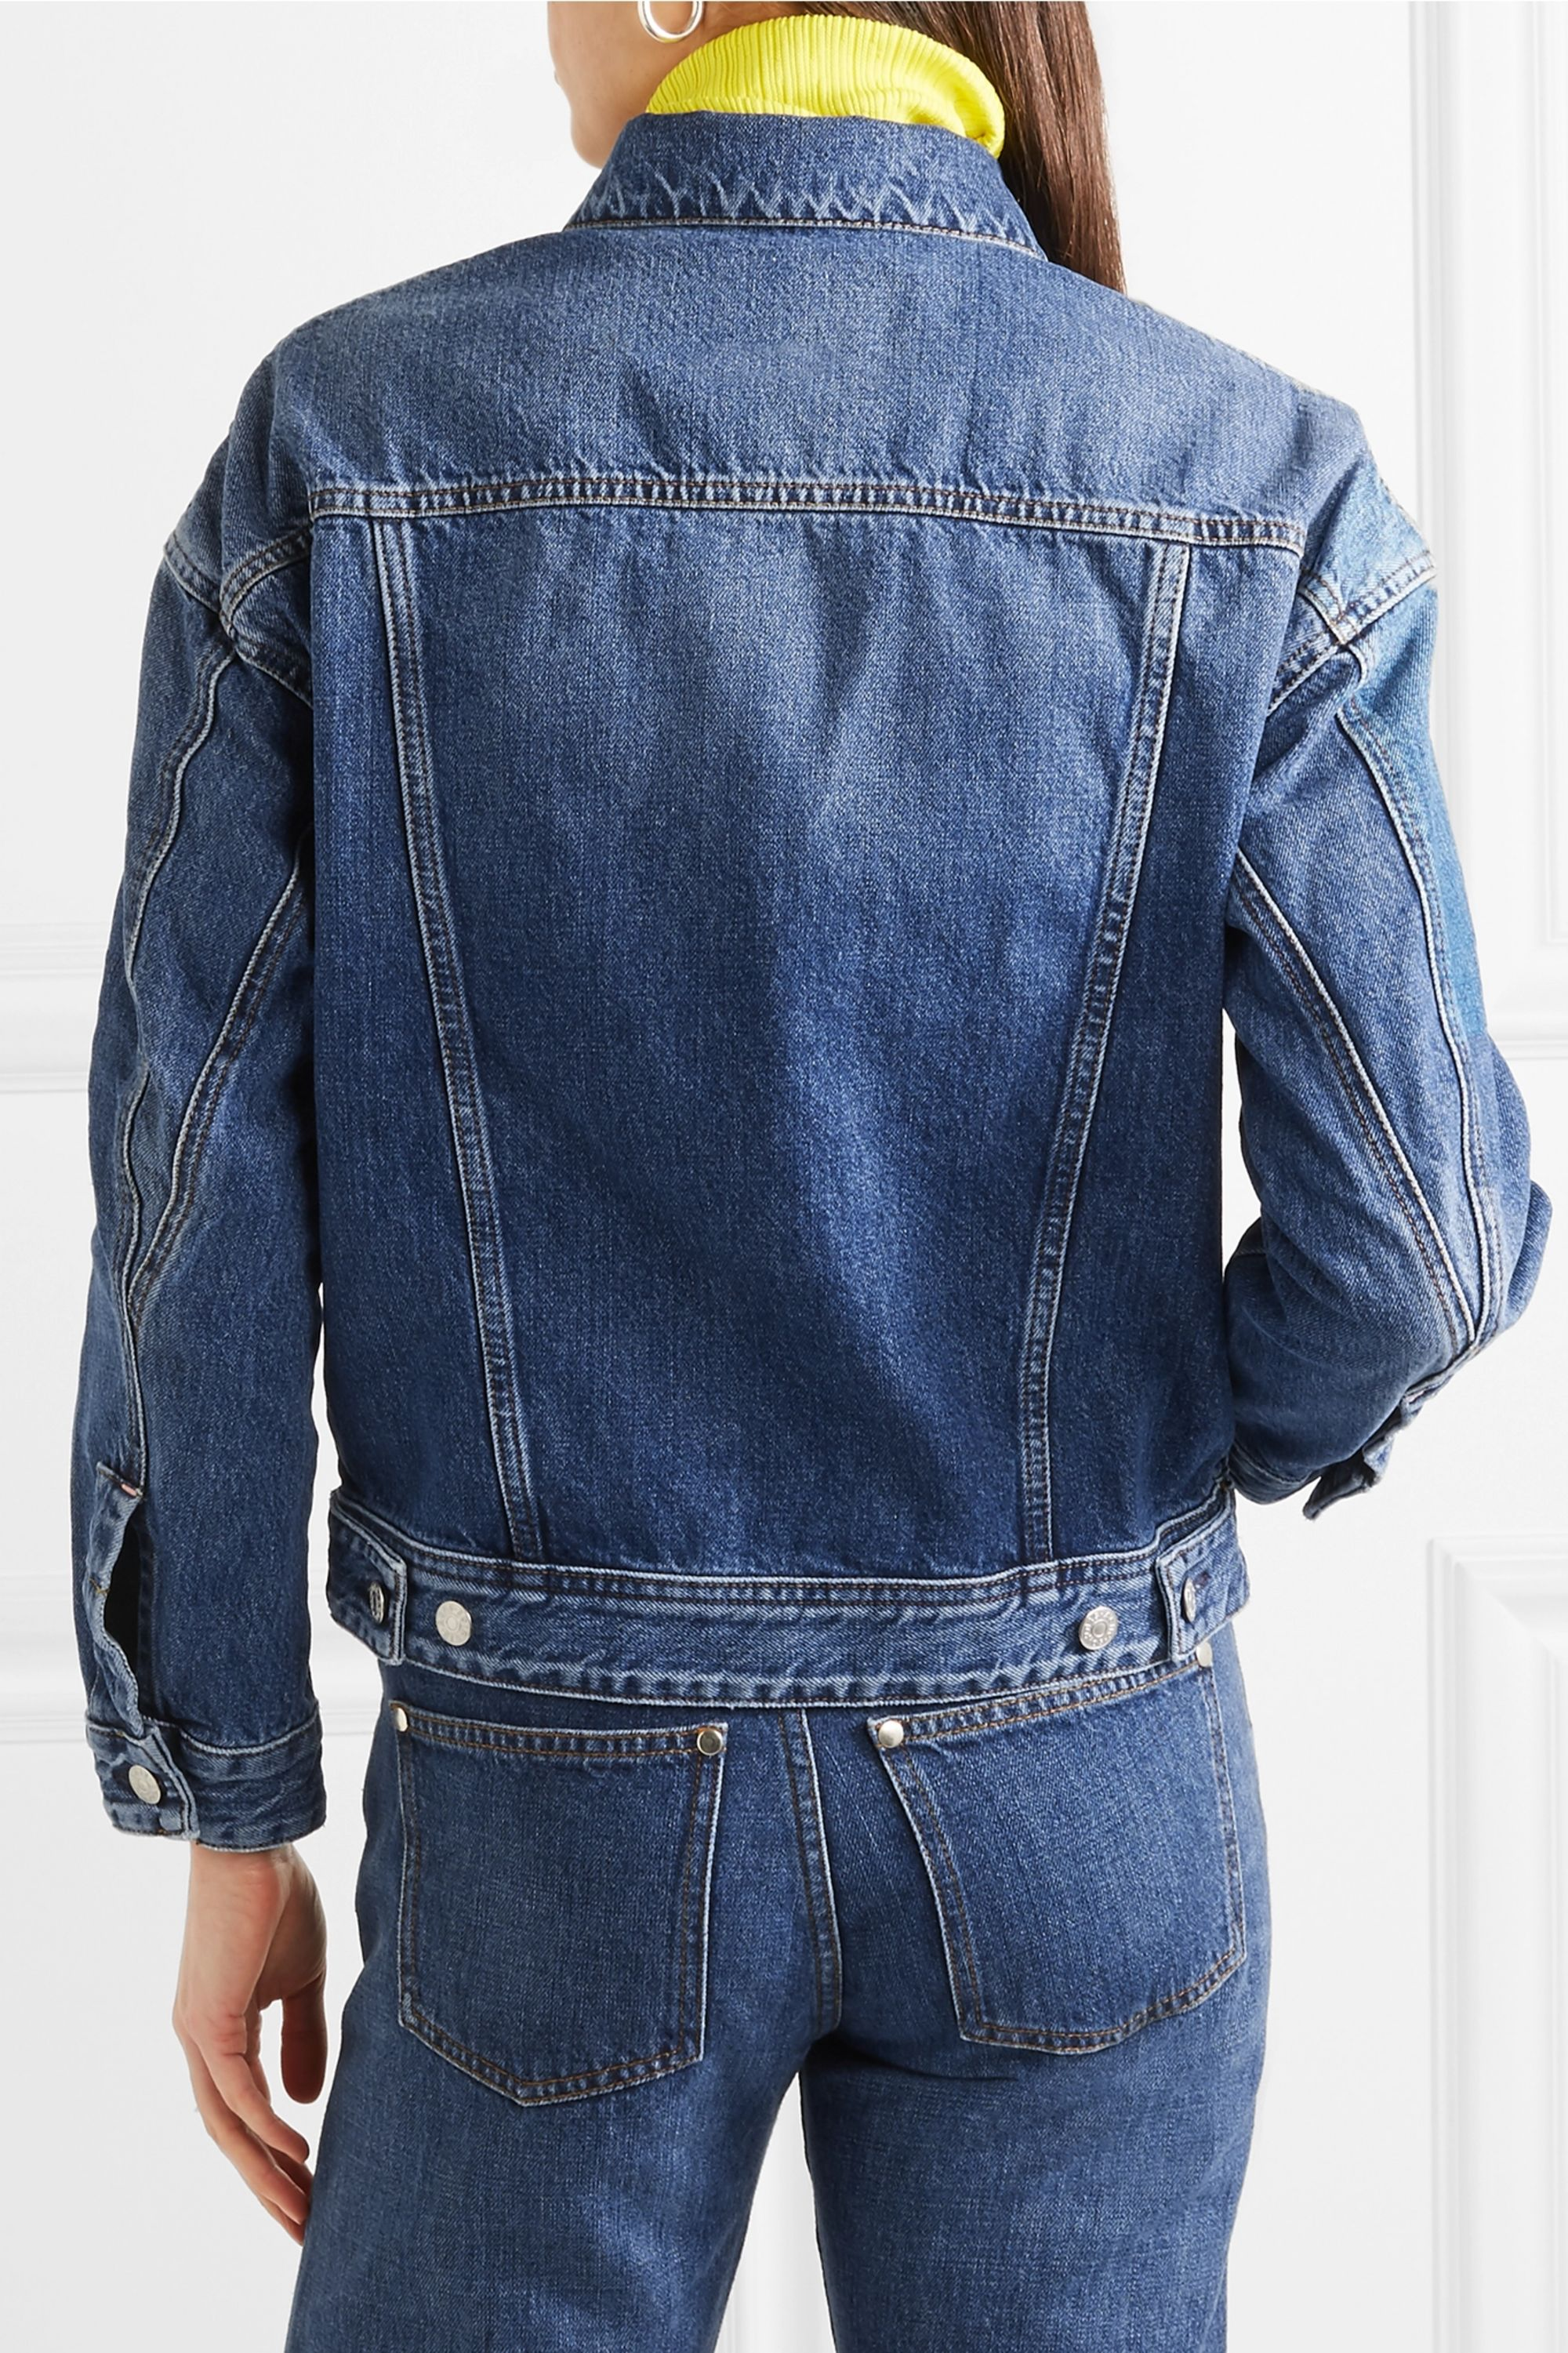 Acne Studios Lamp oversized denim jacket